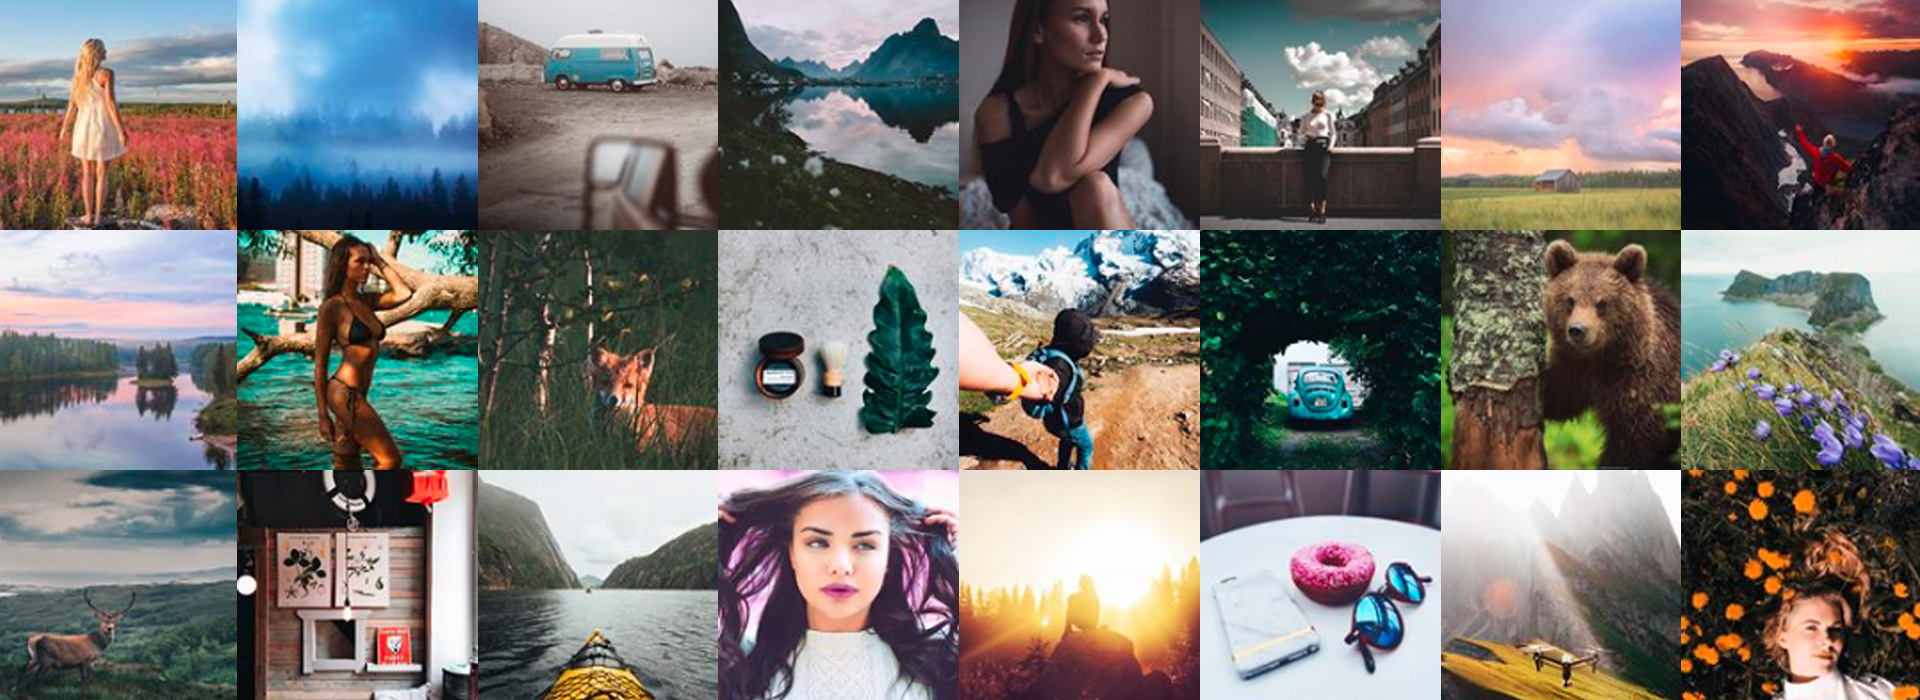 14 Scandinavian Instagrams you should follow